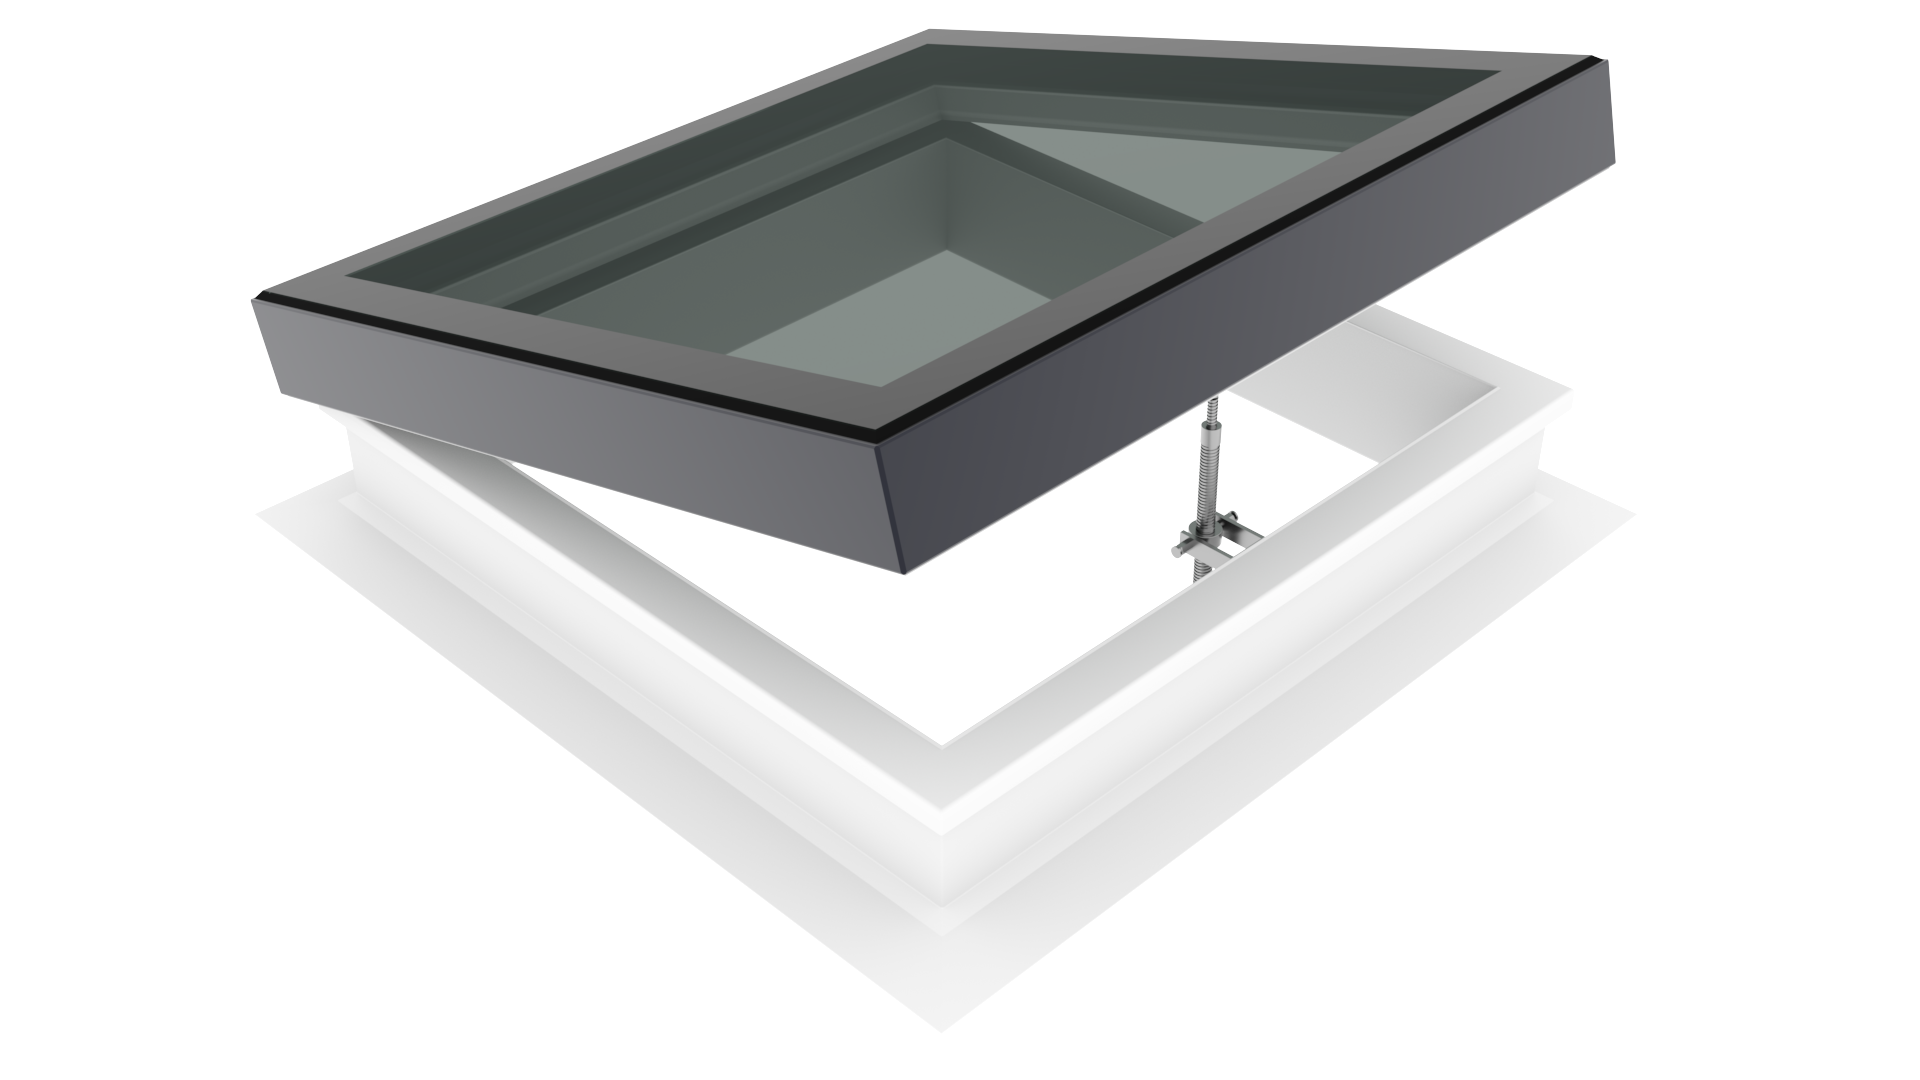 Lunaglaze ALU Manual Hinged Glass Rooflight with PVC Kerb